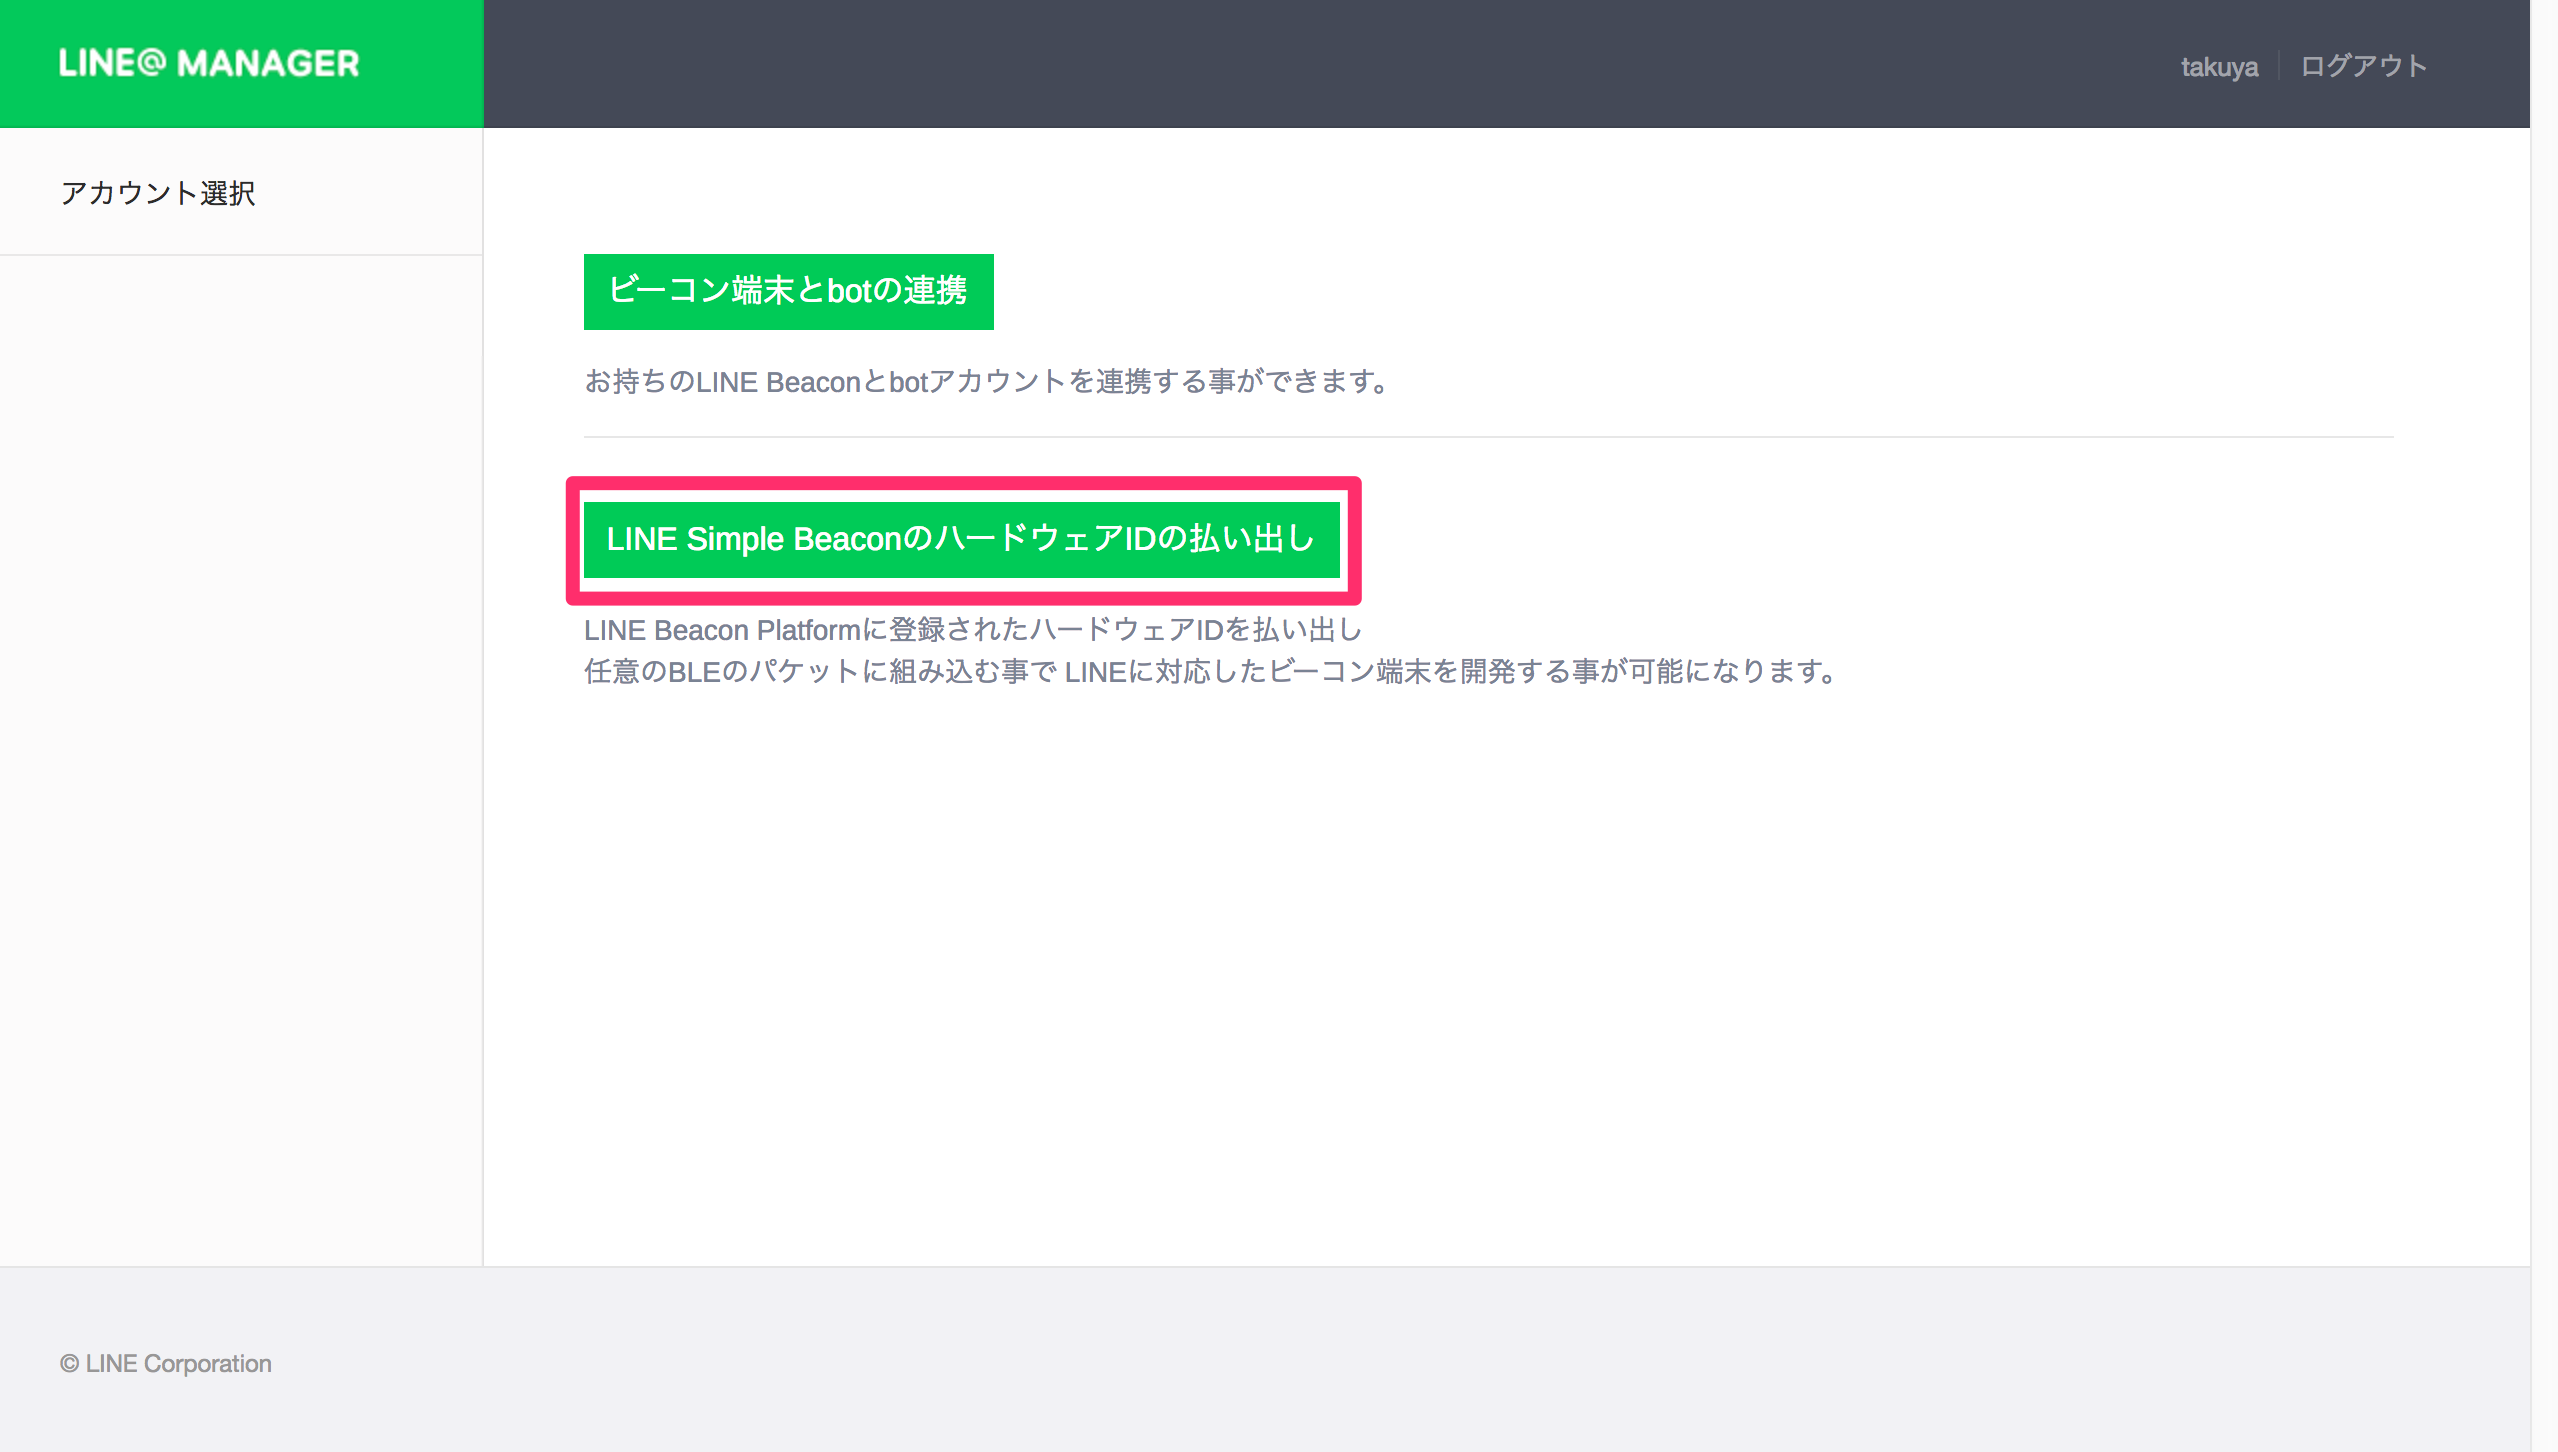 LINE_OFFICIAL_ACCOUNT_MANAGER.png (180.7 kB)